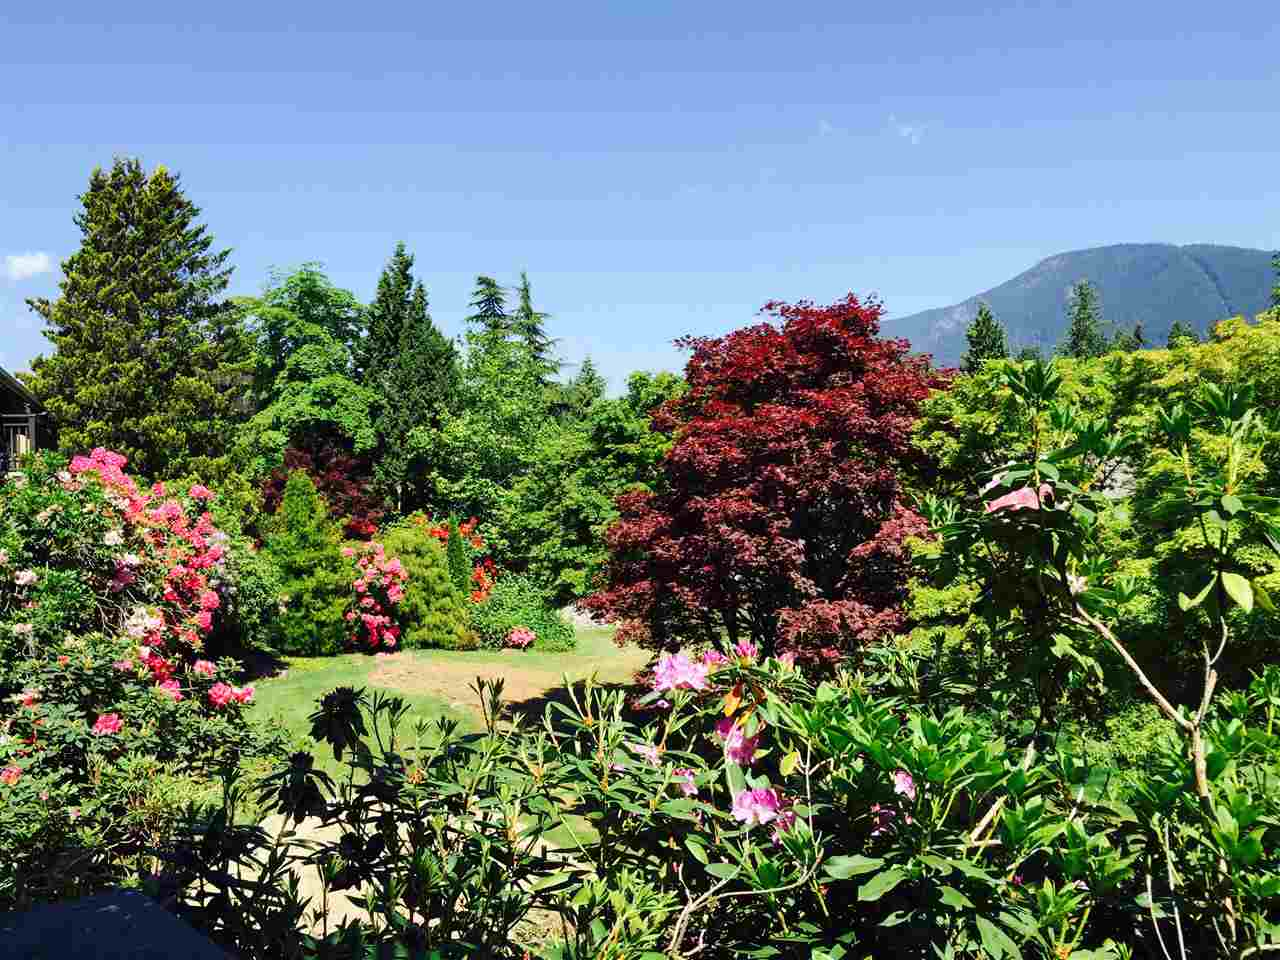 WOW WHAT A VIEW! Situated in the best part of the complex, facing gardens & Grouse Mountain, this feels like a townhome! Well laid out & a well-managed complex that has had numerous upgrades over the past 7 years including newer roof, decks, drainage, &  foundation /infrastructure. Newer renovations include smooth ceilings, stainless steel appliances, upgraded electrical panel with in-suite laundry & an extended kitchen featuring solid wood cabinets, quartz countertops & stone backsplash. Solid Hardwood floors, a large deck to enjoy the view & outdoor pool! Steps to the bus stop, Hwy 1, shopping/amenities of Westview plaza & Edgemont Village. Larson Elementary & Delbrook Community Centre. Parking, storage, heat, hot water & cable included; pet friendly! Call for your private showing.